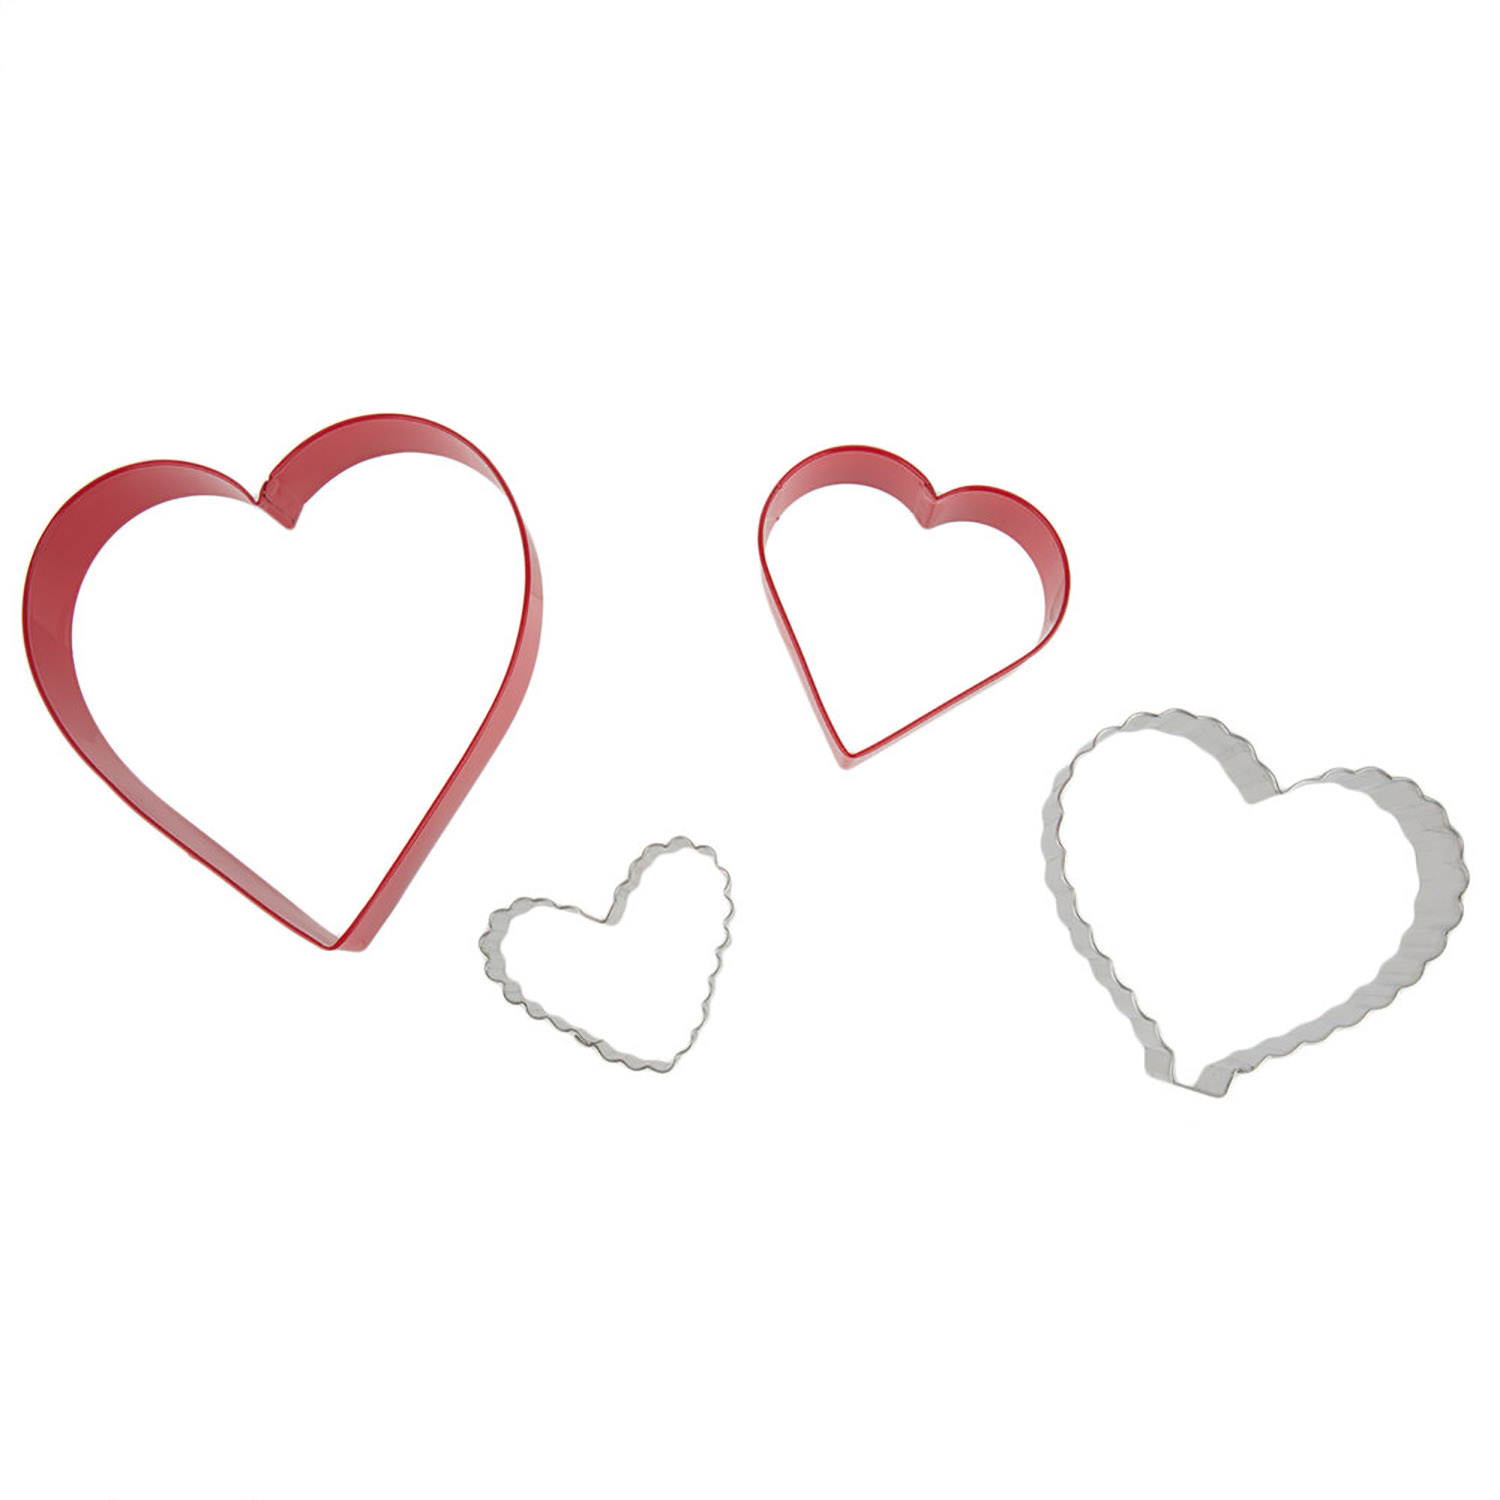 """From the Heart"" Nesting Cookie Cutter Set"